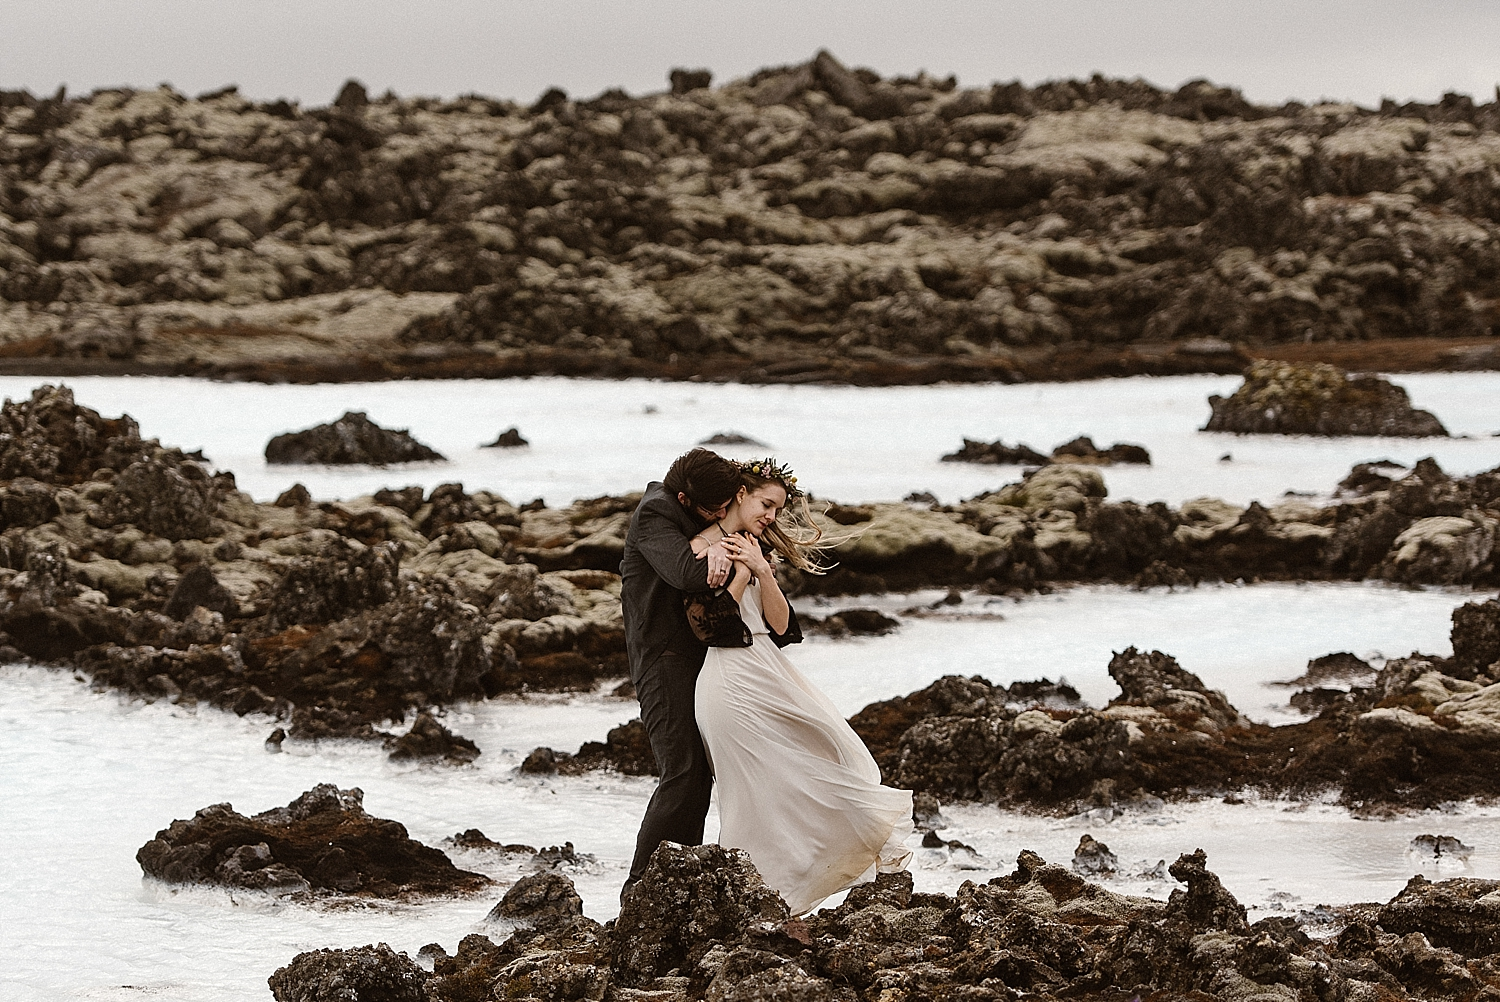 Trying to pick a place for your own elopement adventure? Look no further than Iceland. With diverse landscapes, epic winds and the infamous Blue Lagoon, what other place could be so magical. This intimate elopement throughout Iceland was captured by intimate wedding photographer Maddie Mae.